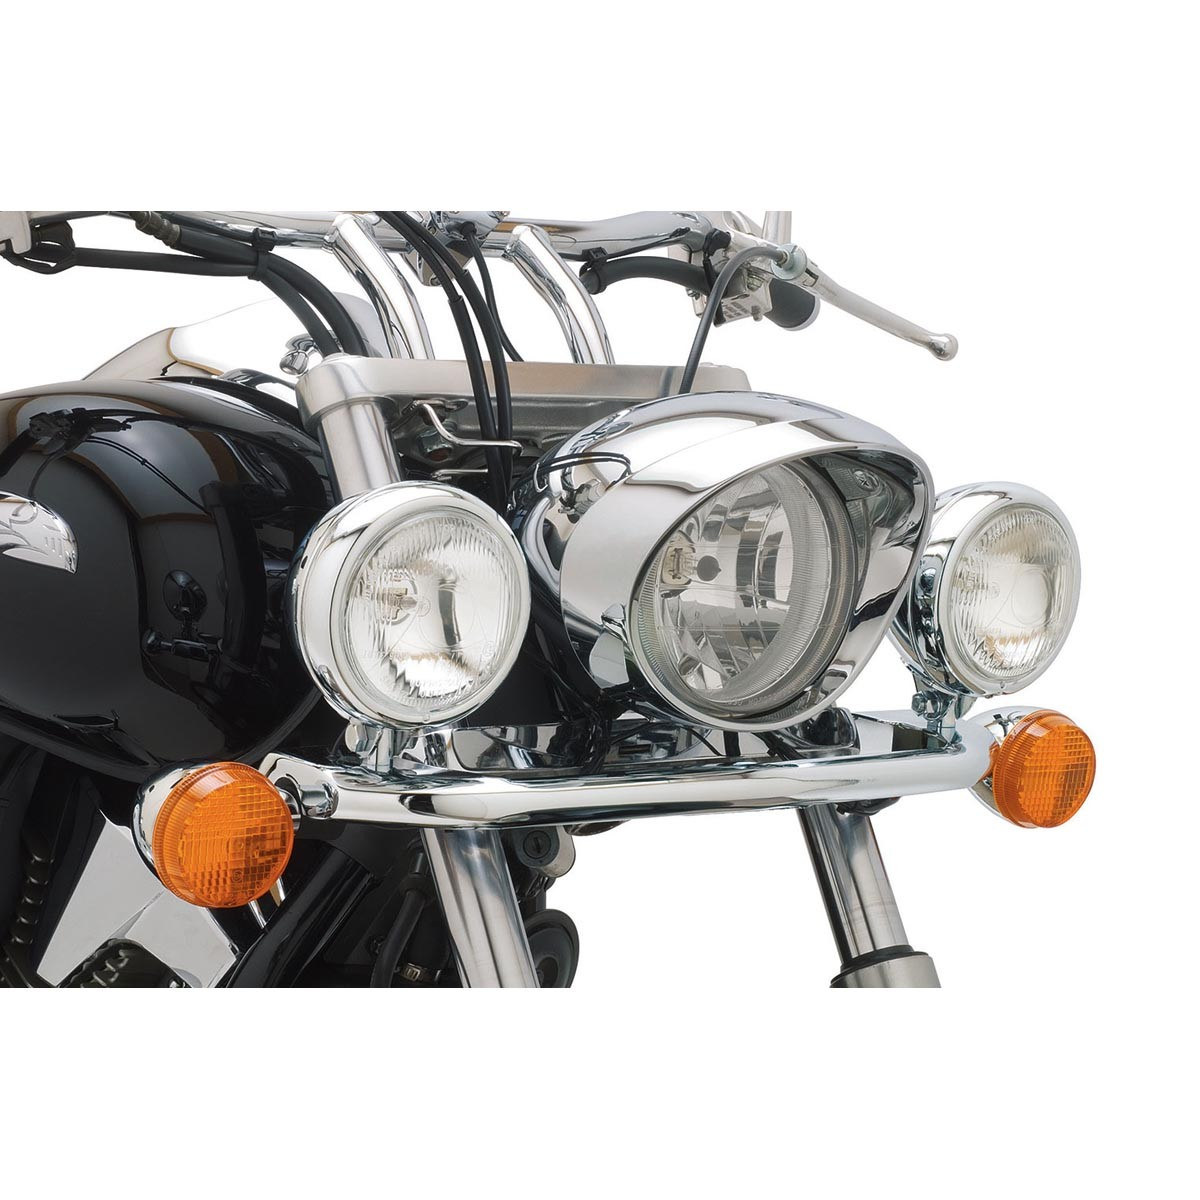 COBRA Steel Lightbar/Spotlights w/Turn Signals - 04-0152